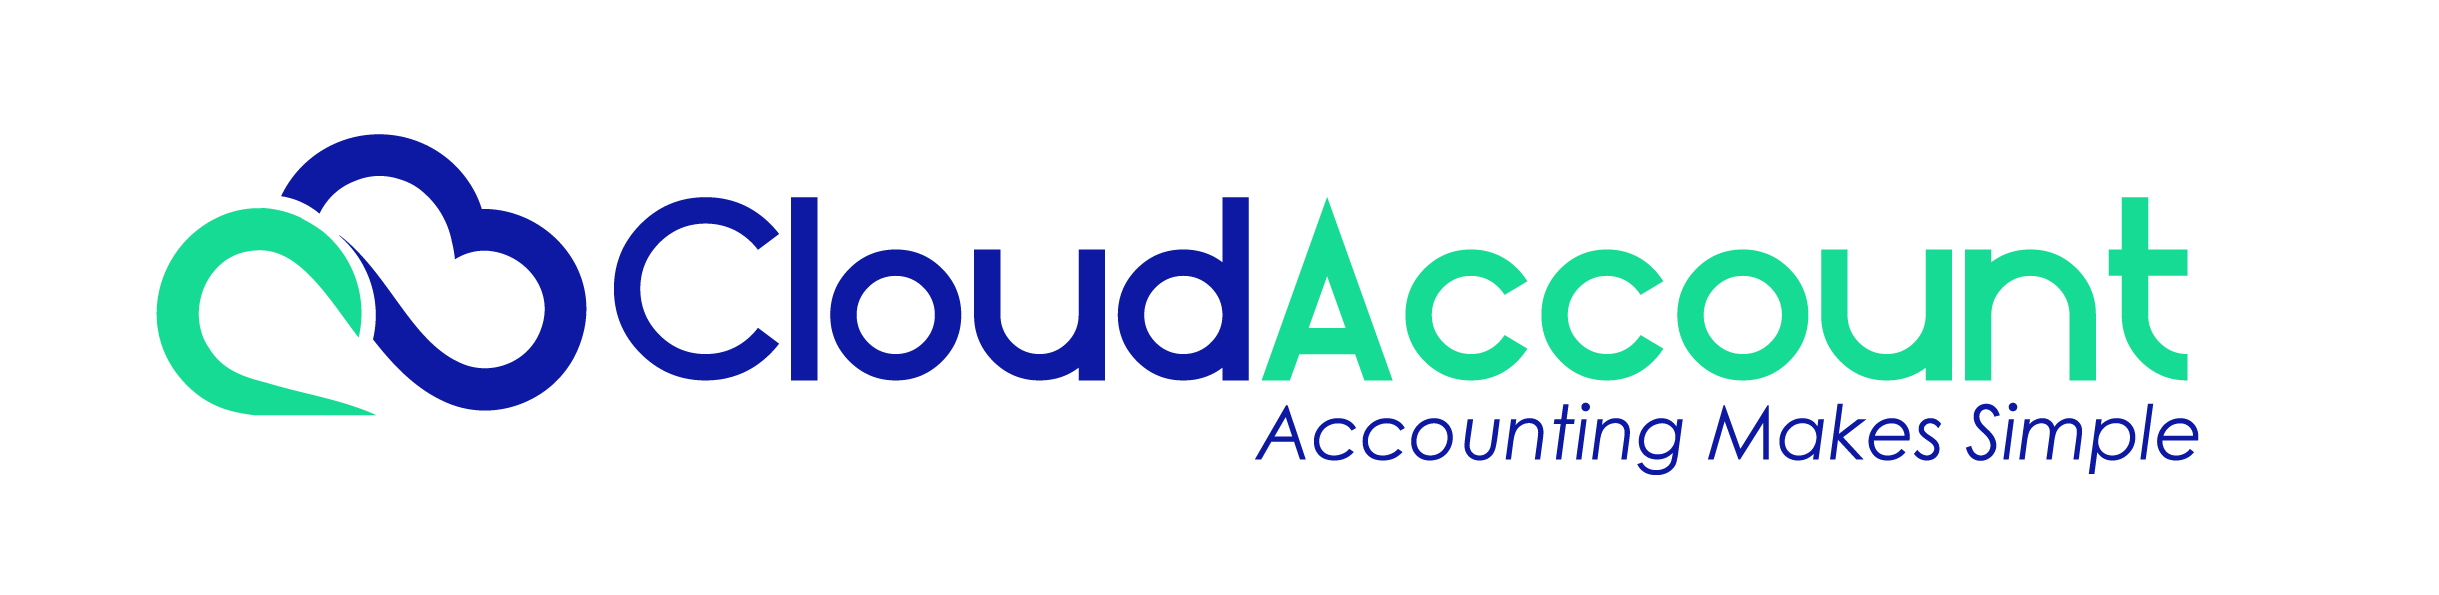 Cloud Account Logo